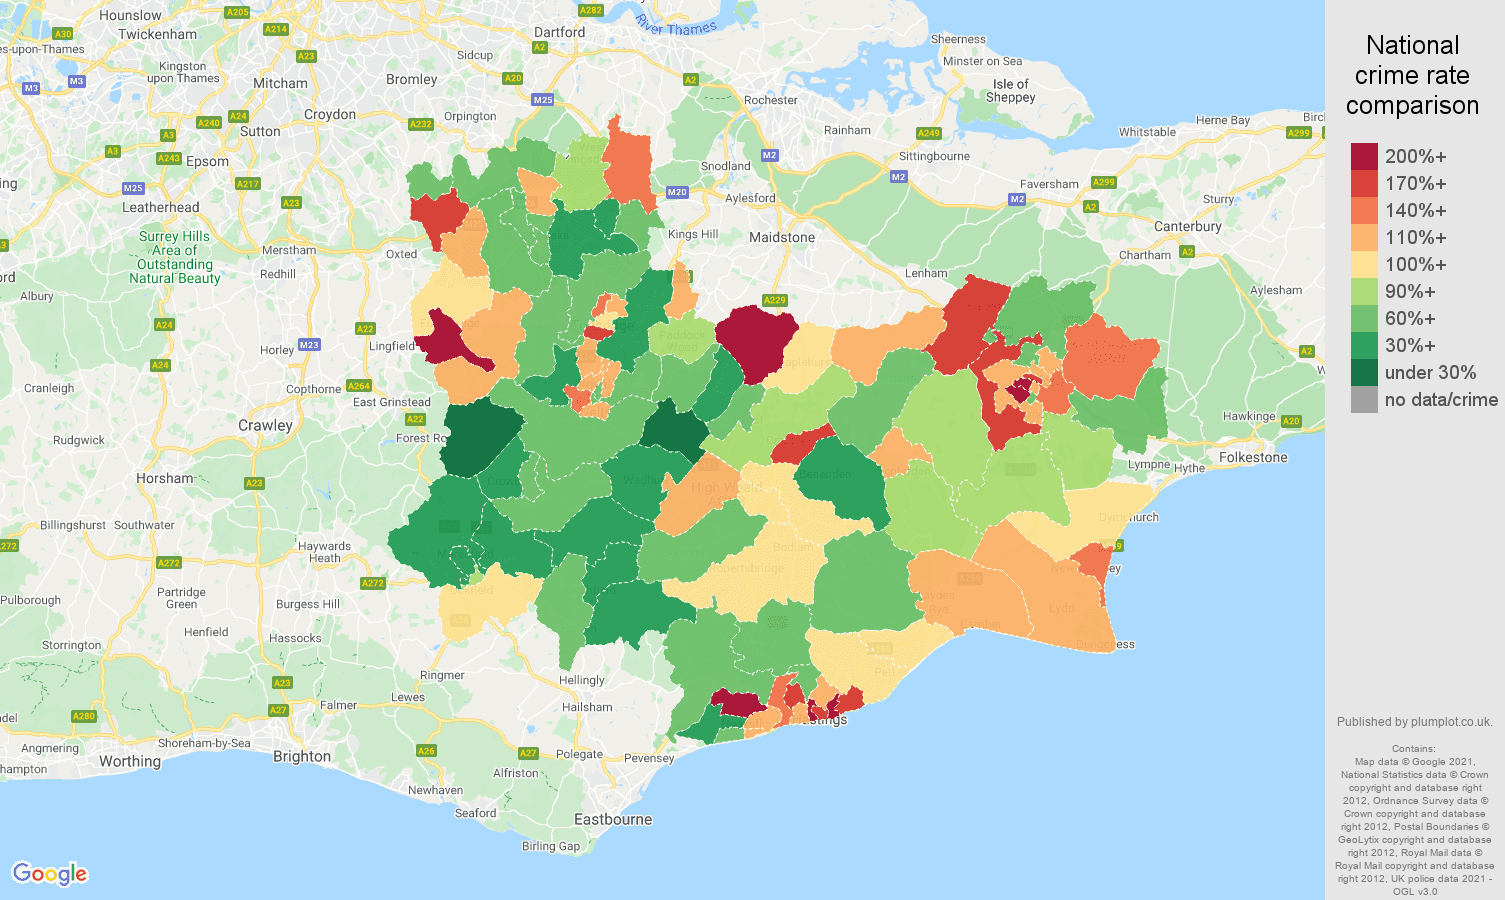 Tonbridge criminal damage and arson crime rate comparison map